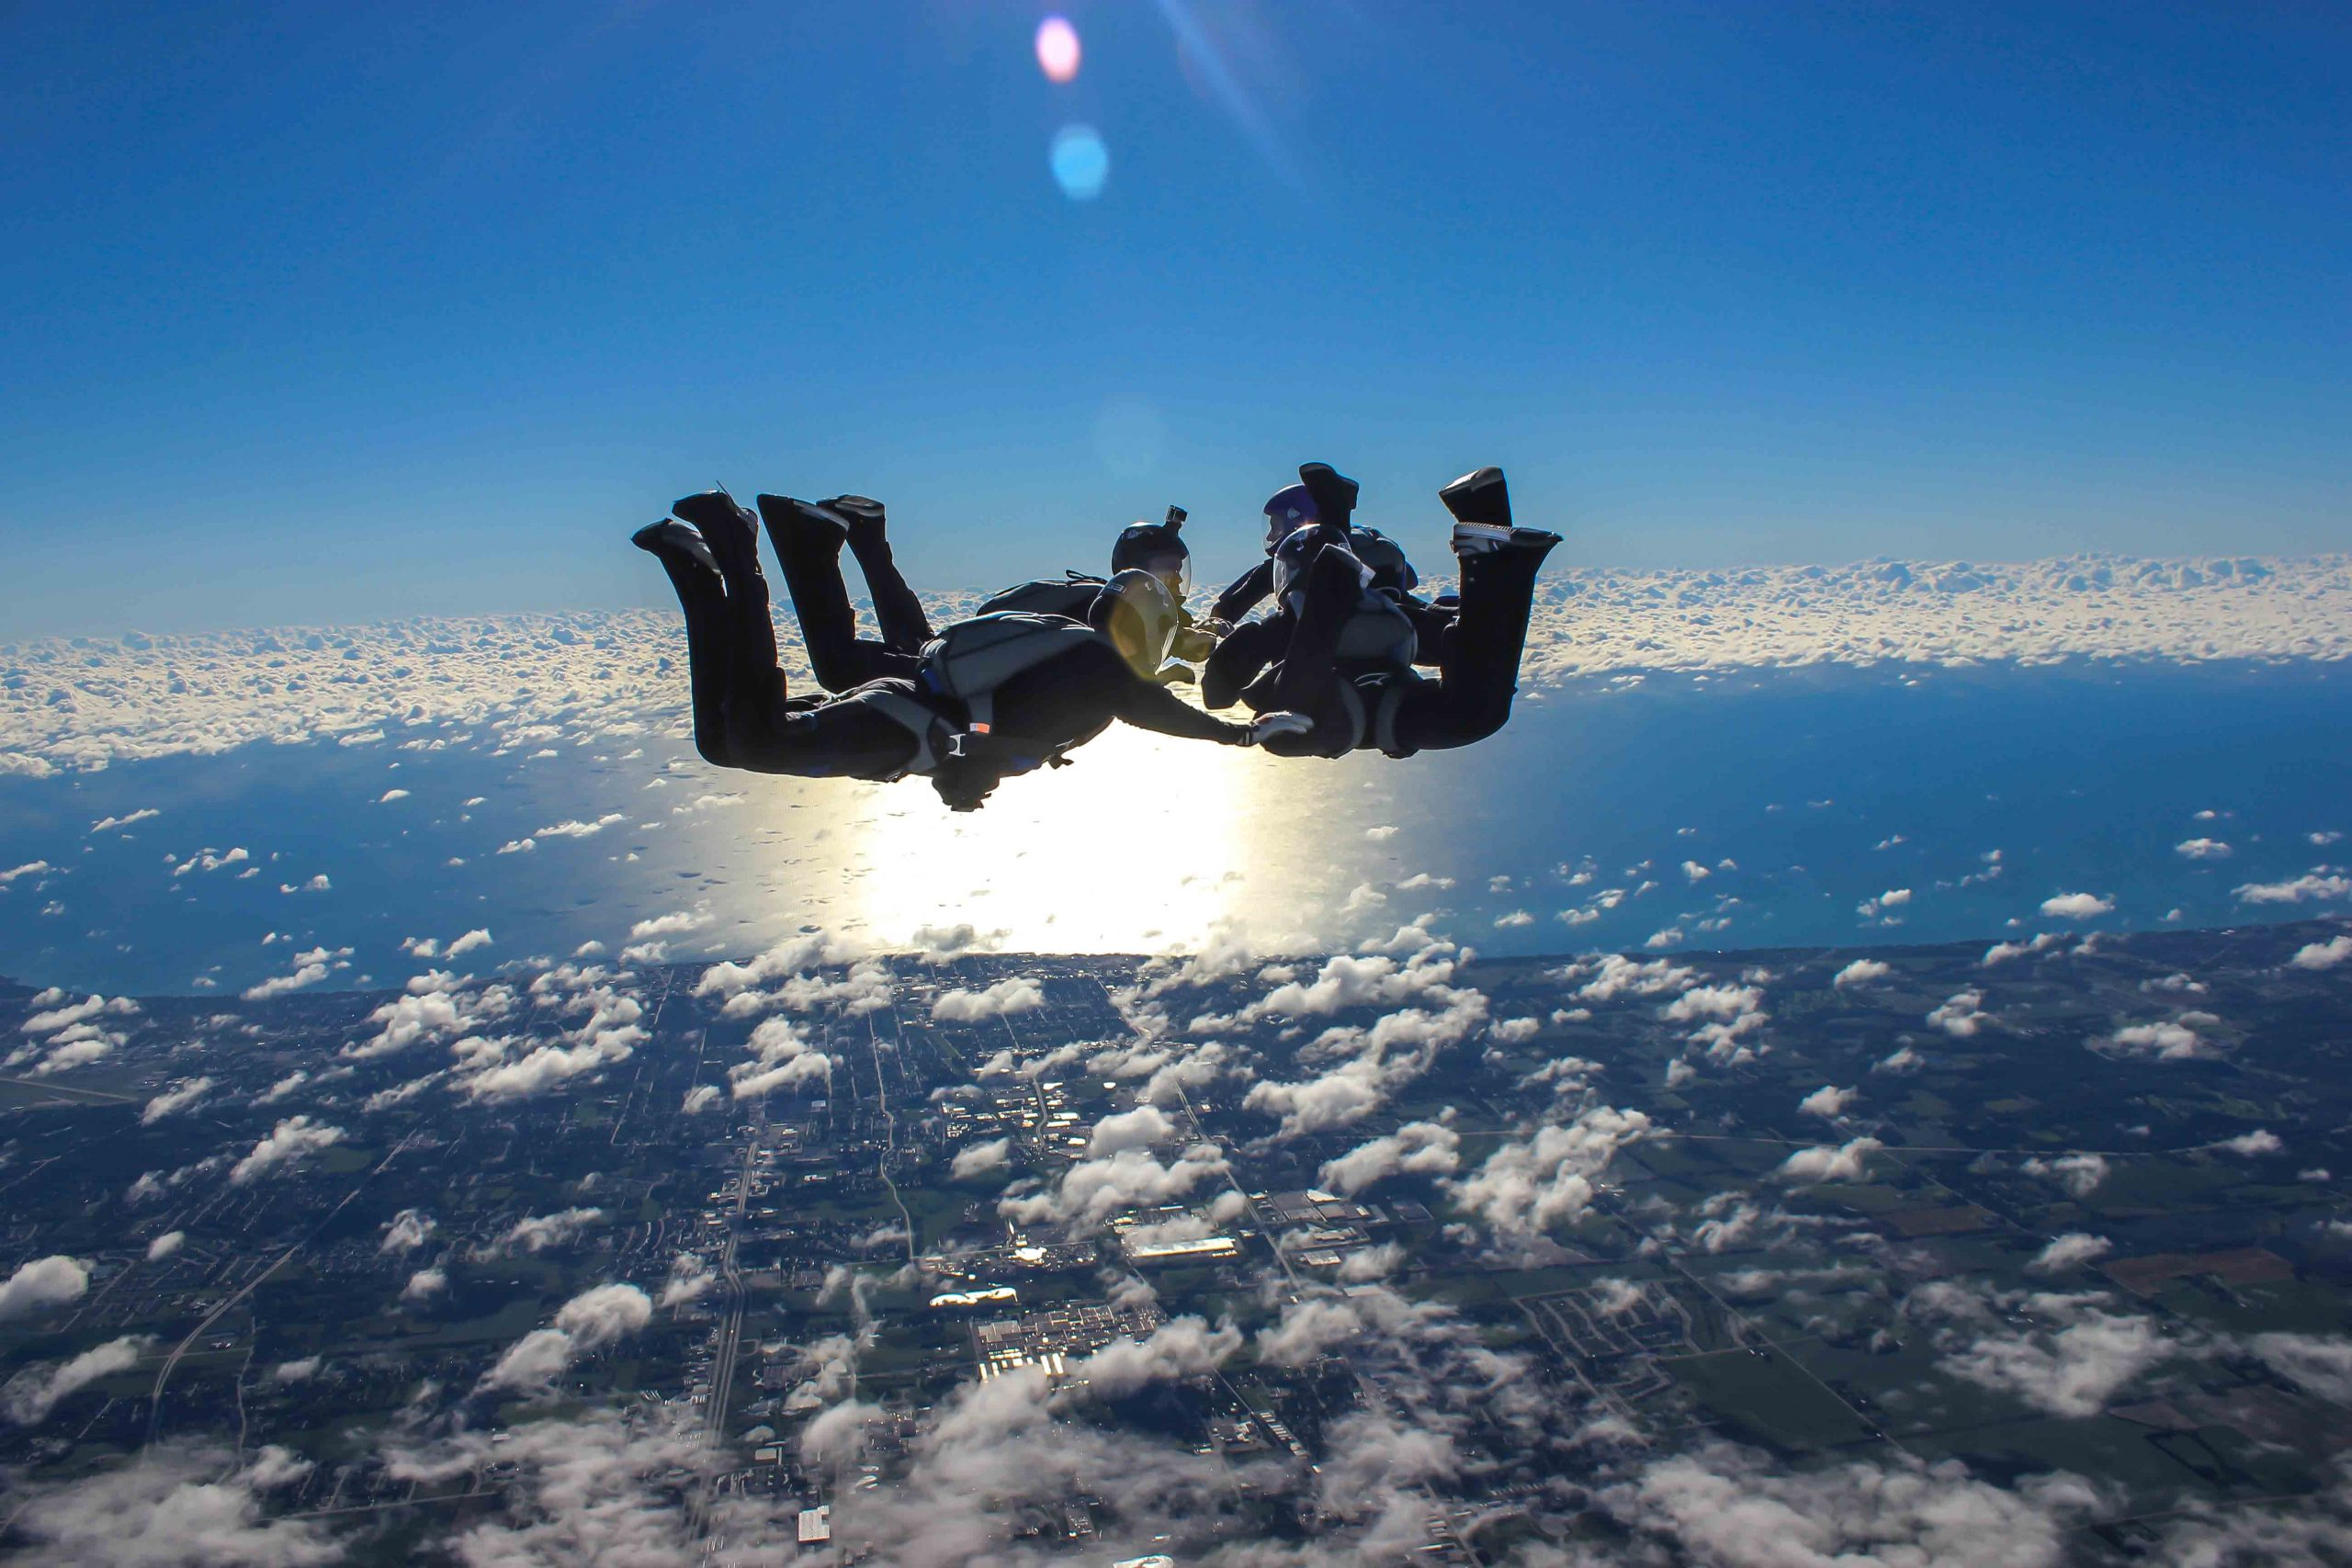 Skydiving Skydive Midwest NEXT 4Way Team Lake Michigan Chicago Milwaukee SDMW NEXT XP